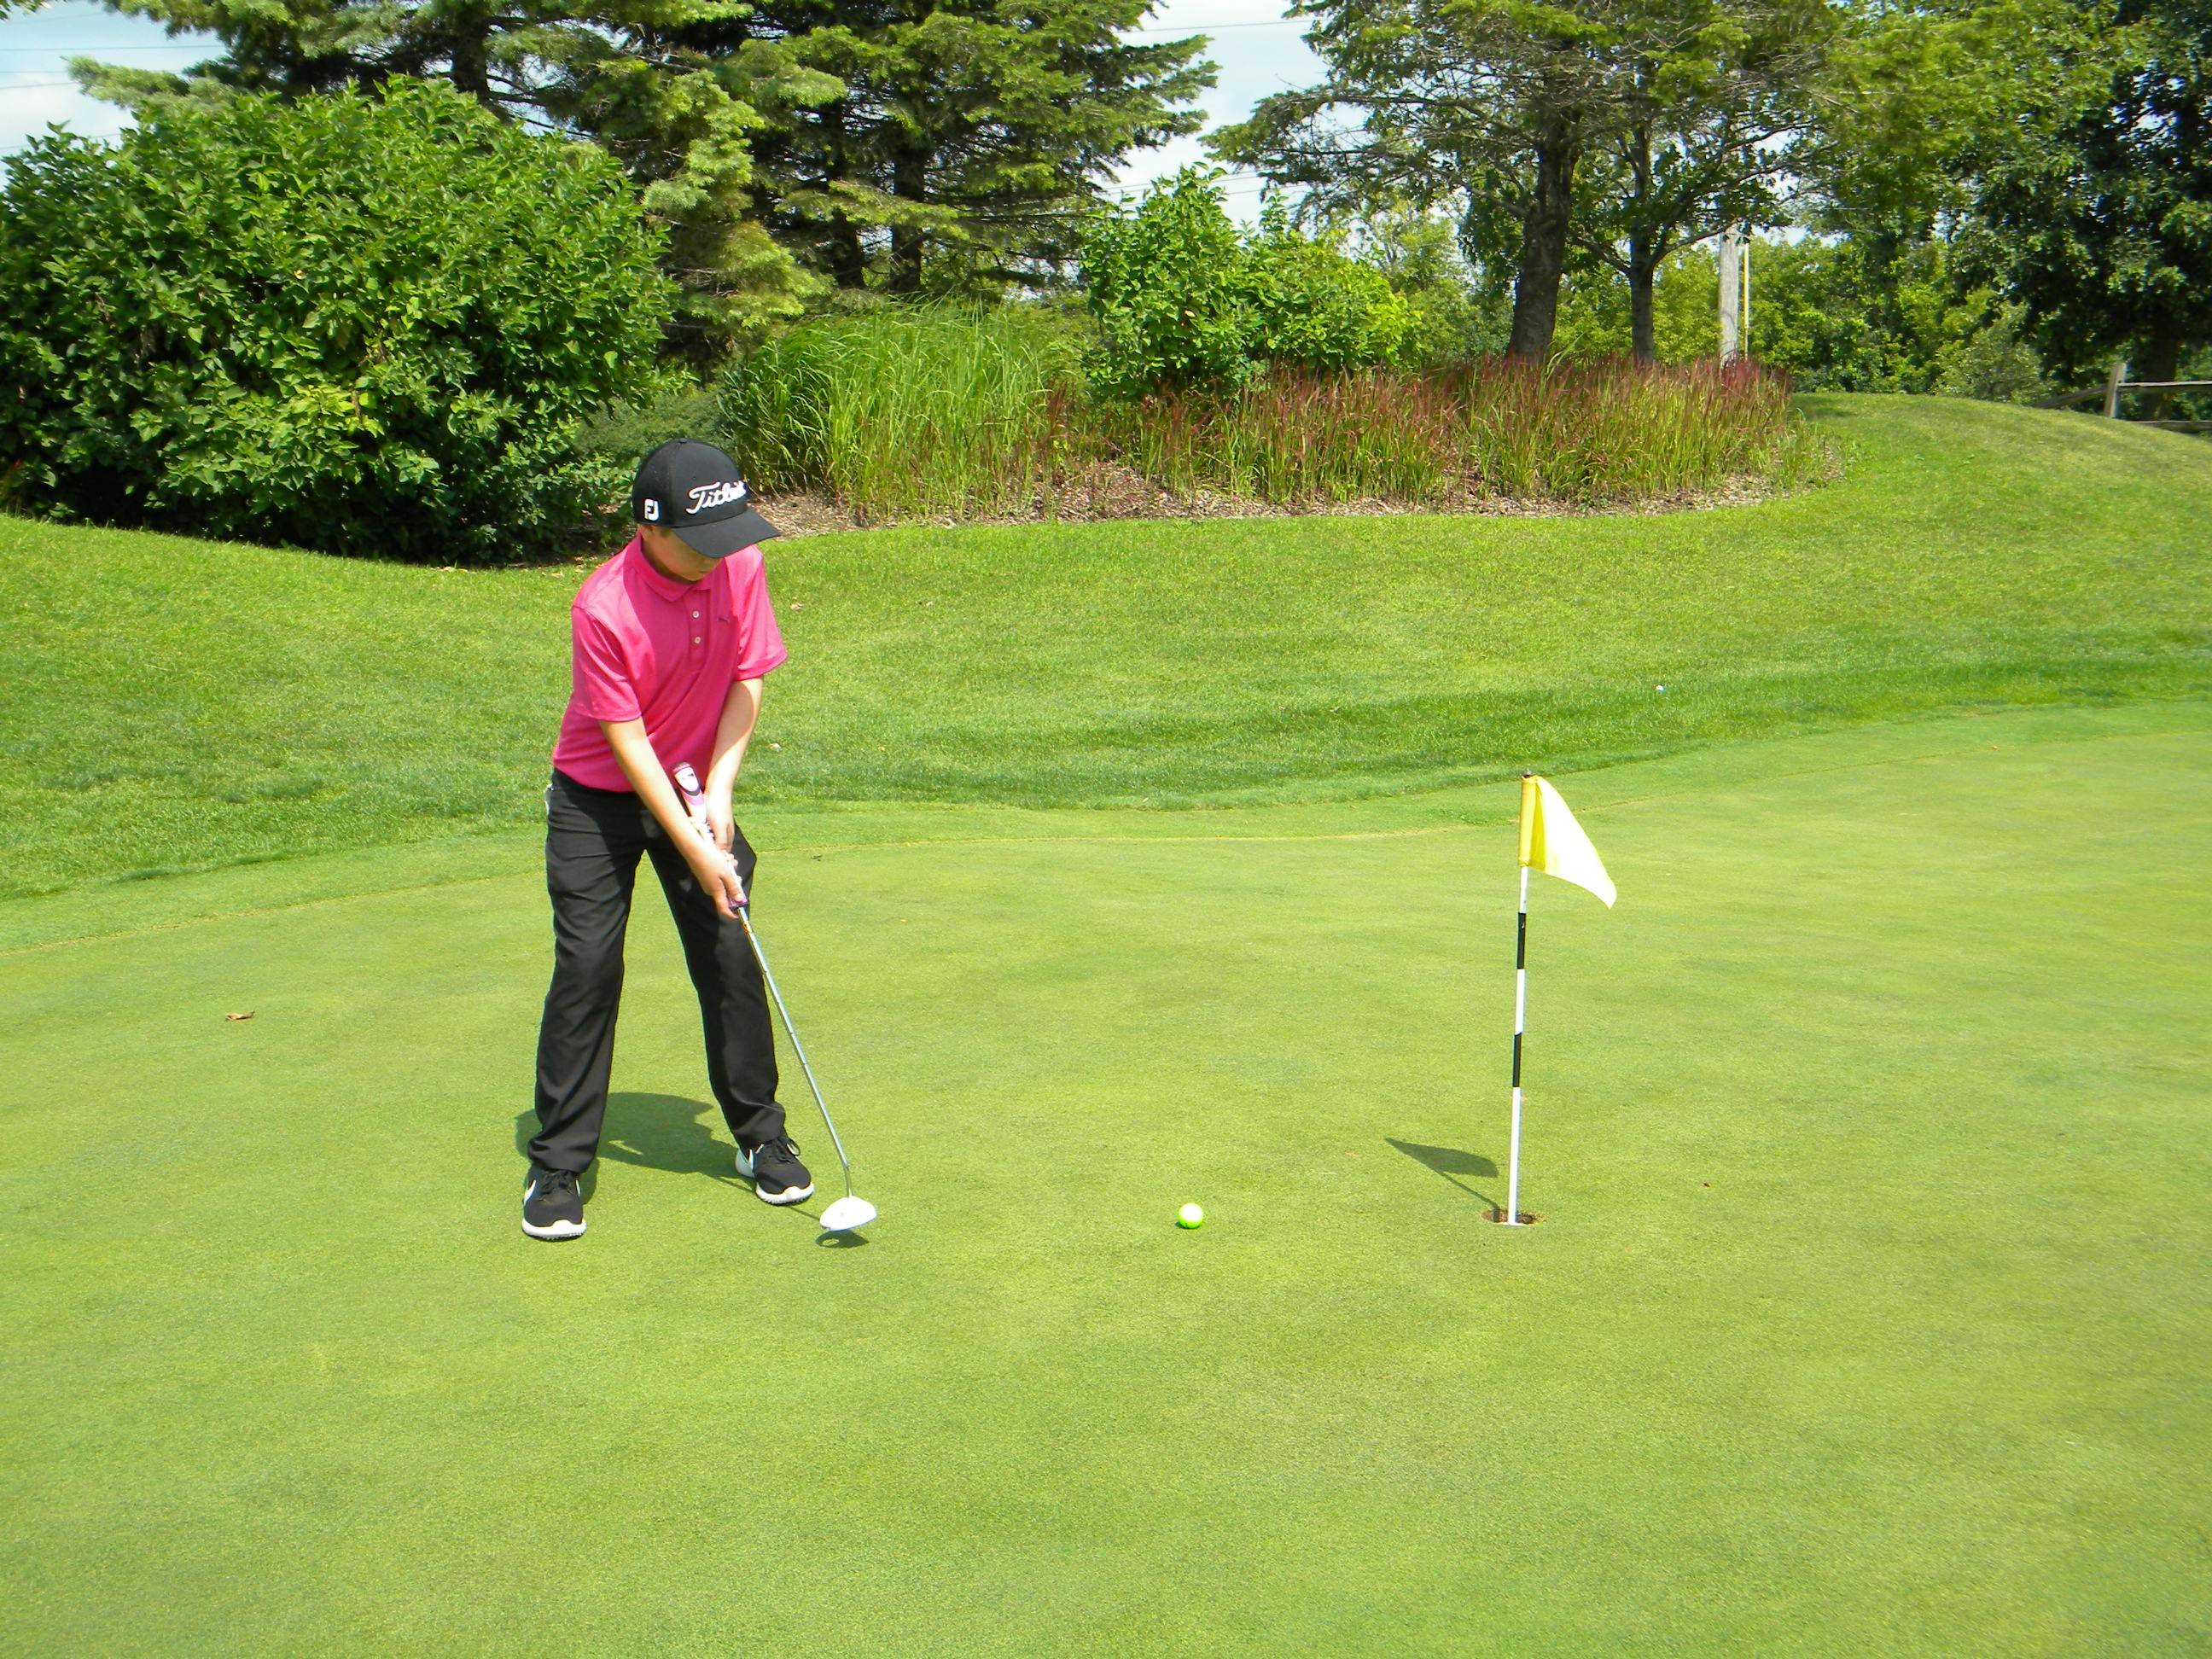 Golfers who participated in the Grayslake Golf Course's Junior Golf Camp and League showed off their new skills at the end of the season tournament on Saturday, August 4, 2018.Grayslake Park District Staff